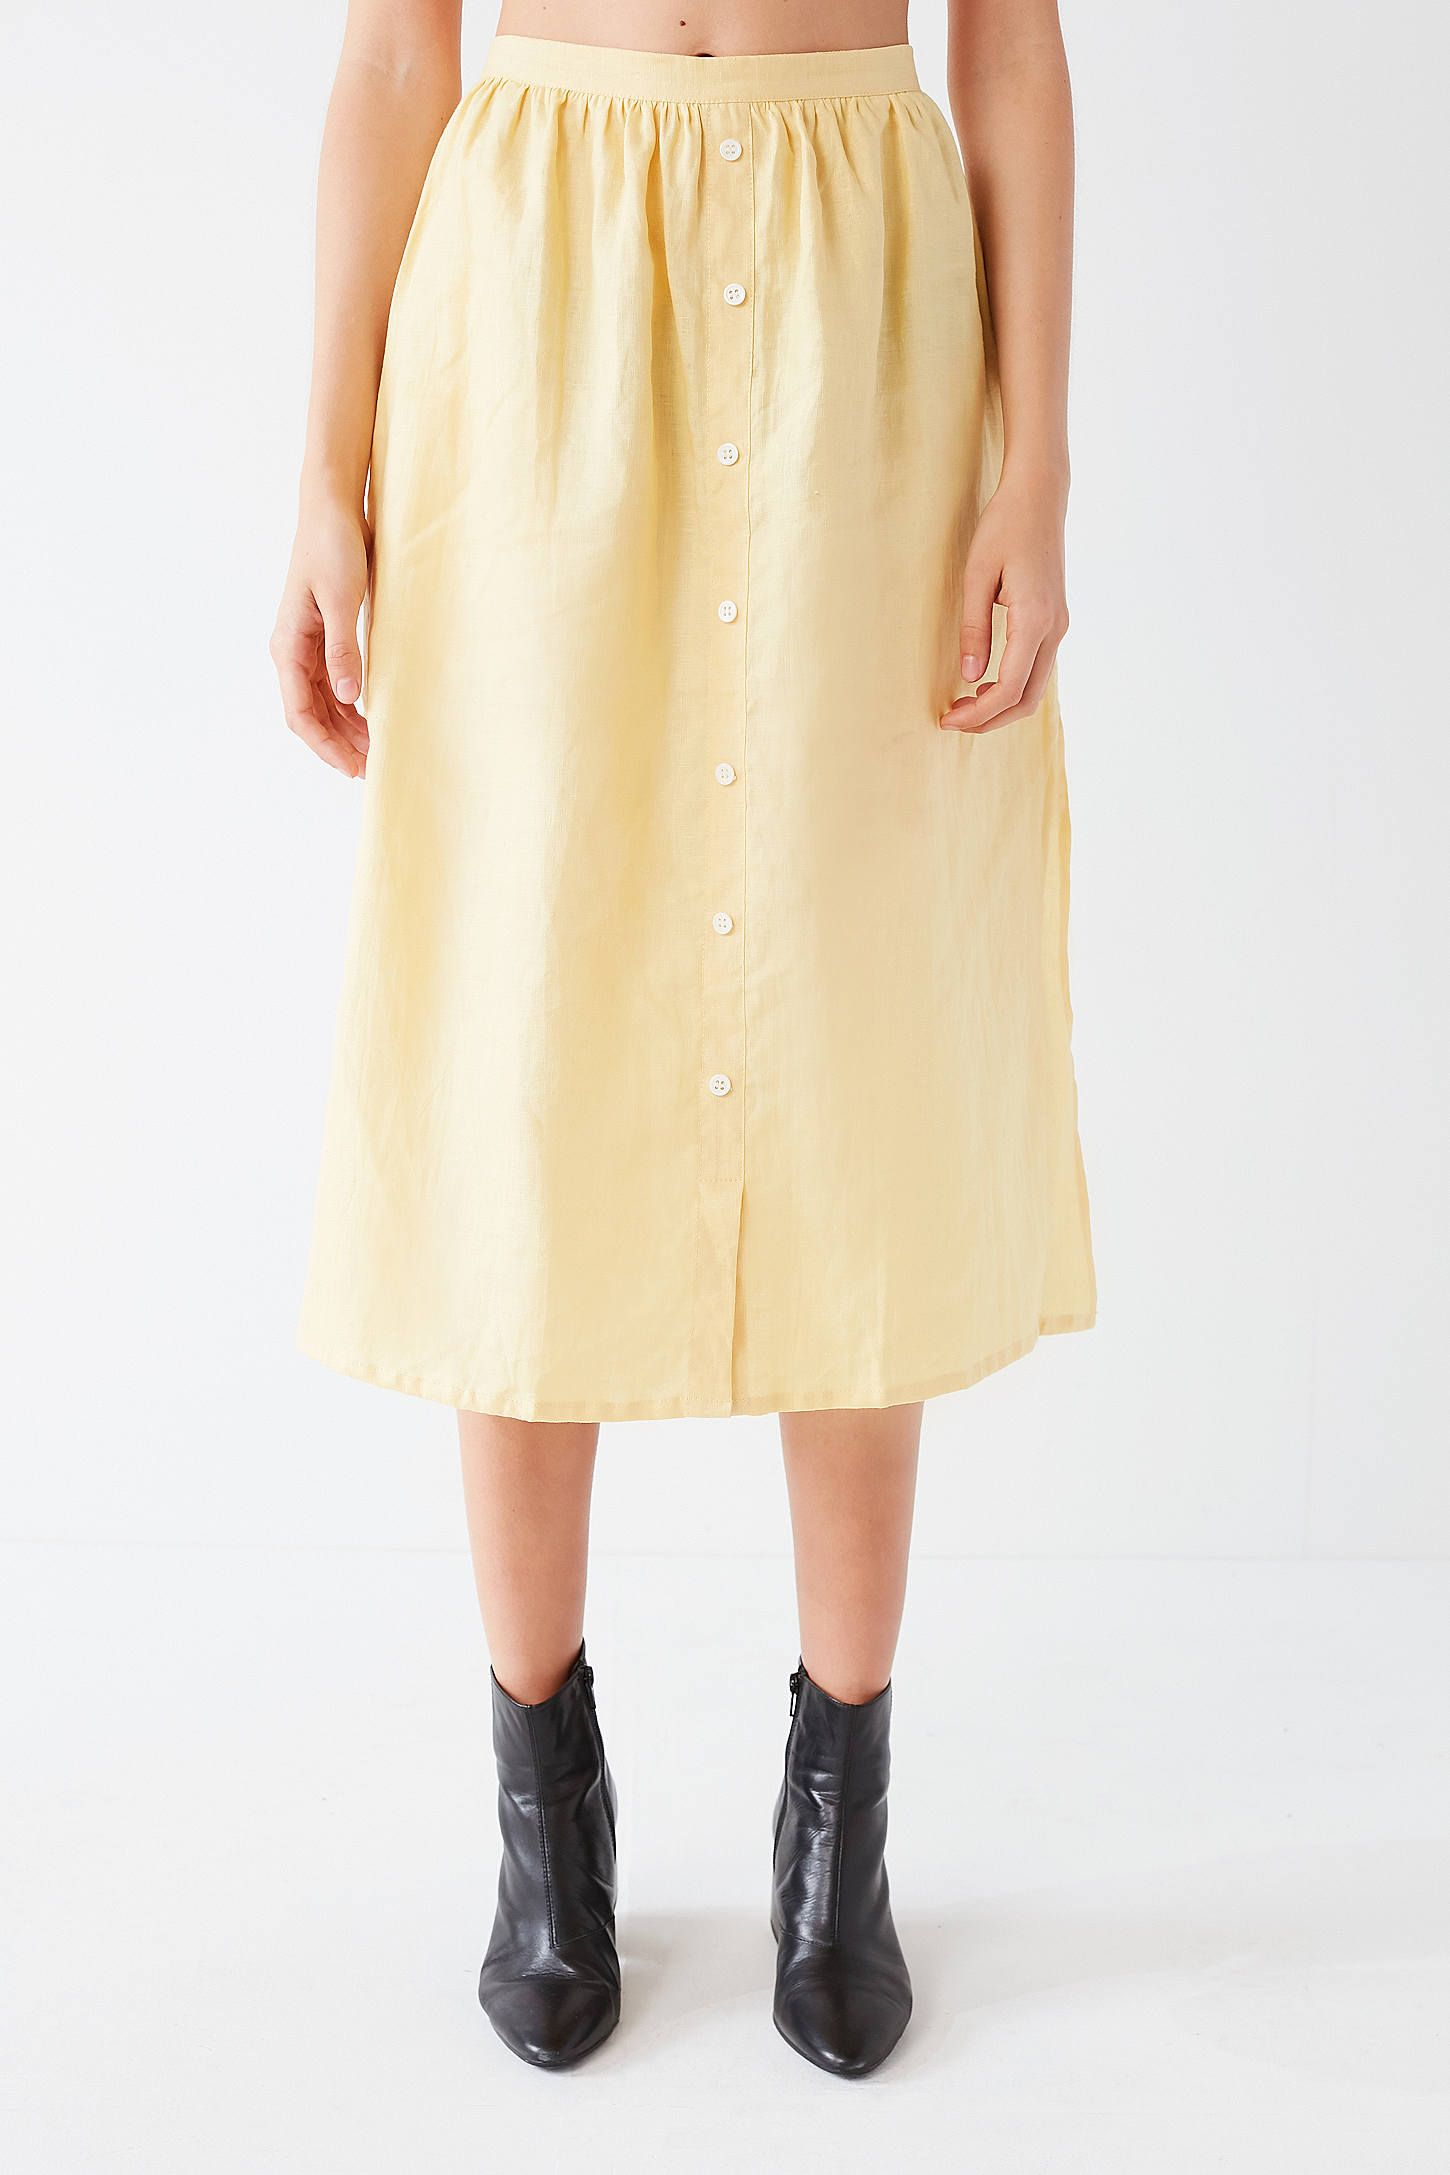 9b7f83f91e Shop Faithfull The Brand Seine Button-Down Skirt at Urban Outfitters today.  We carry all the latest styles, colors and brands for you to choose from  right ...